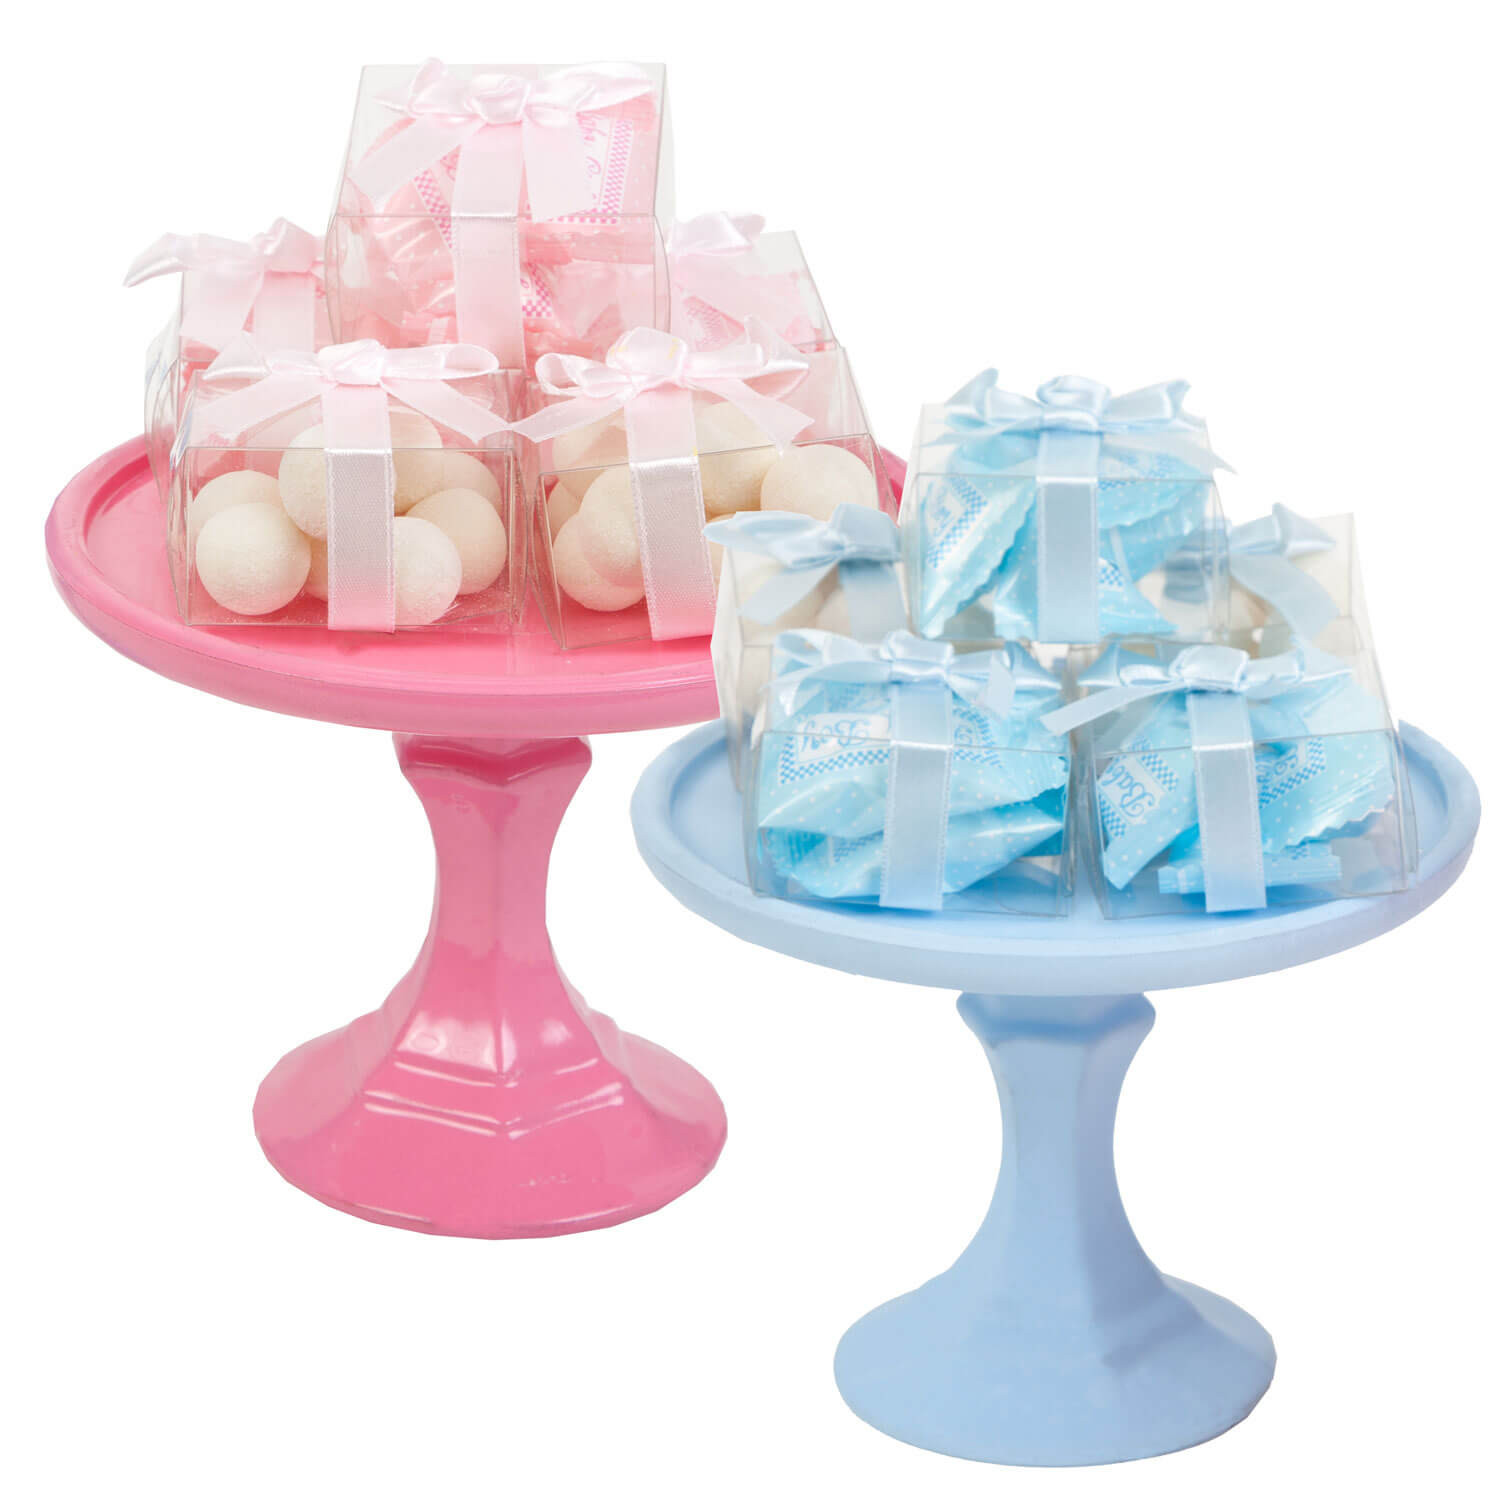 Craft Ideas For Baby Shower Decorations  DollarTree